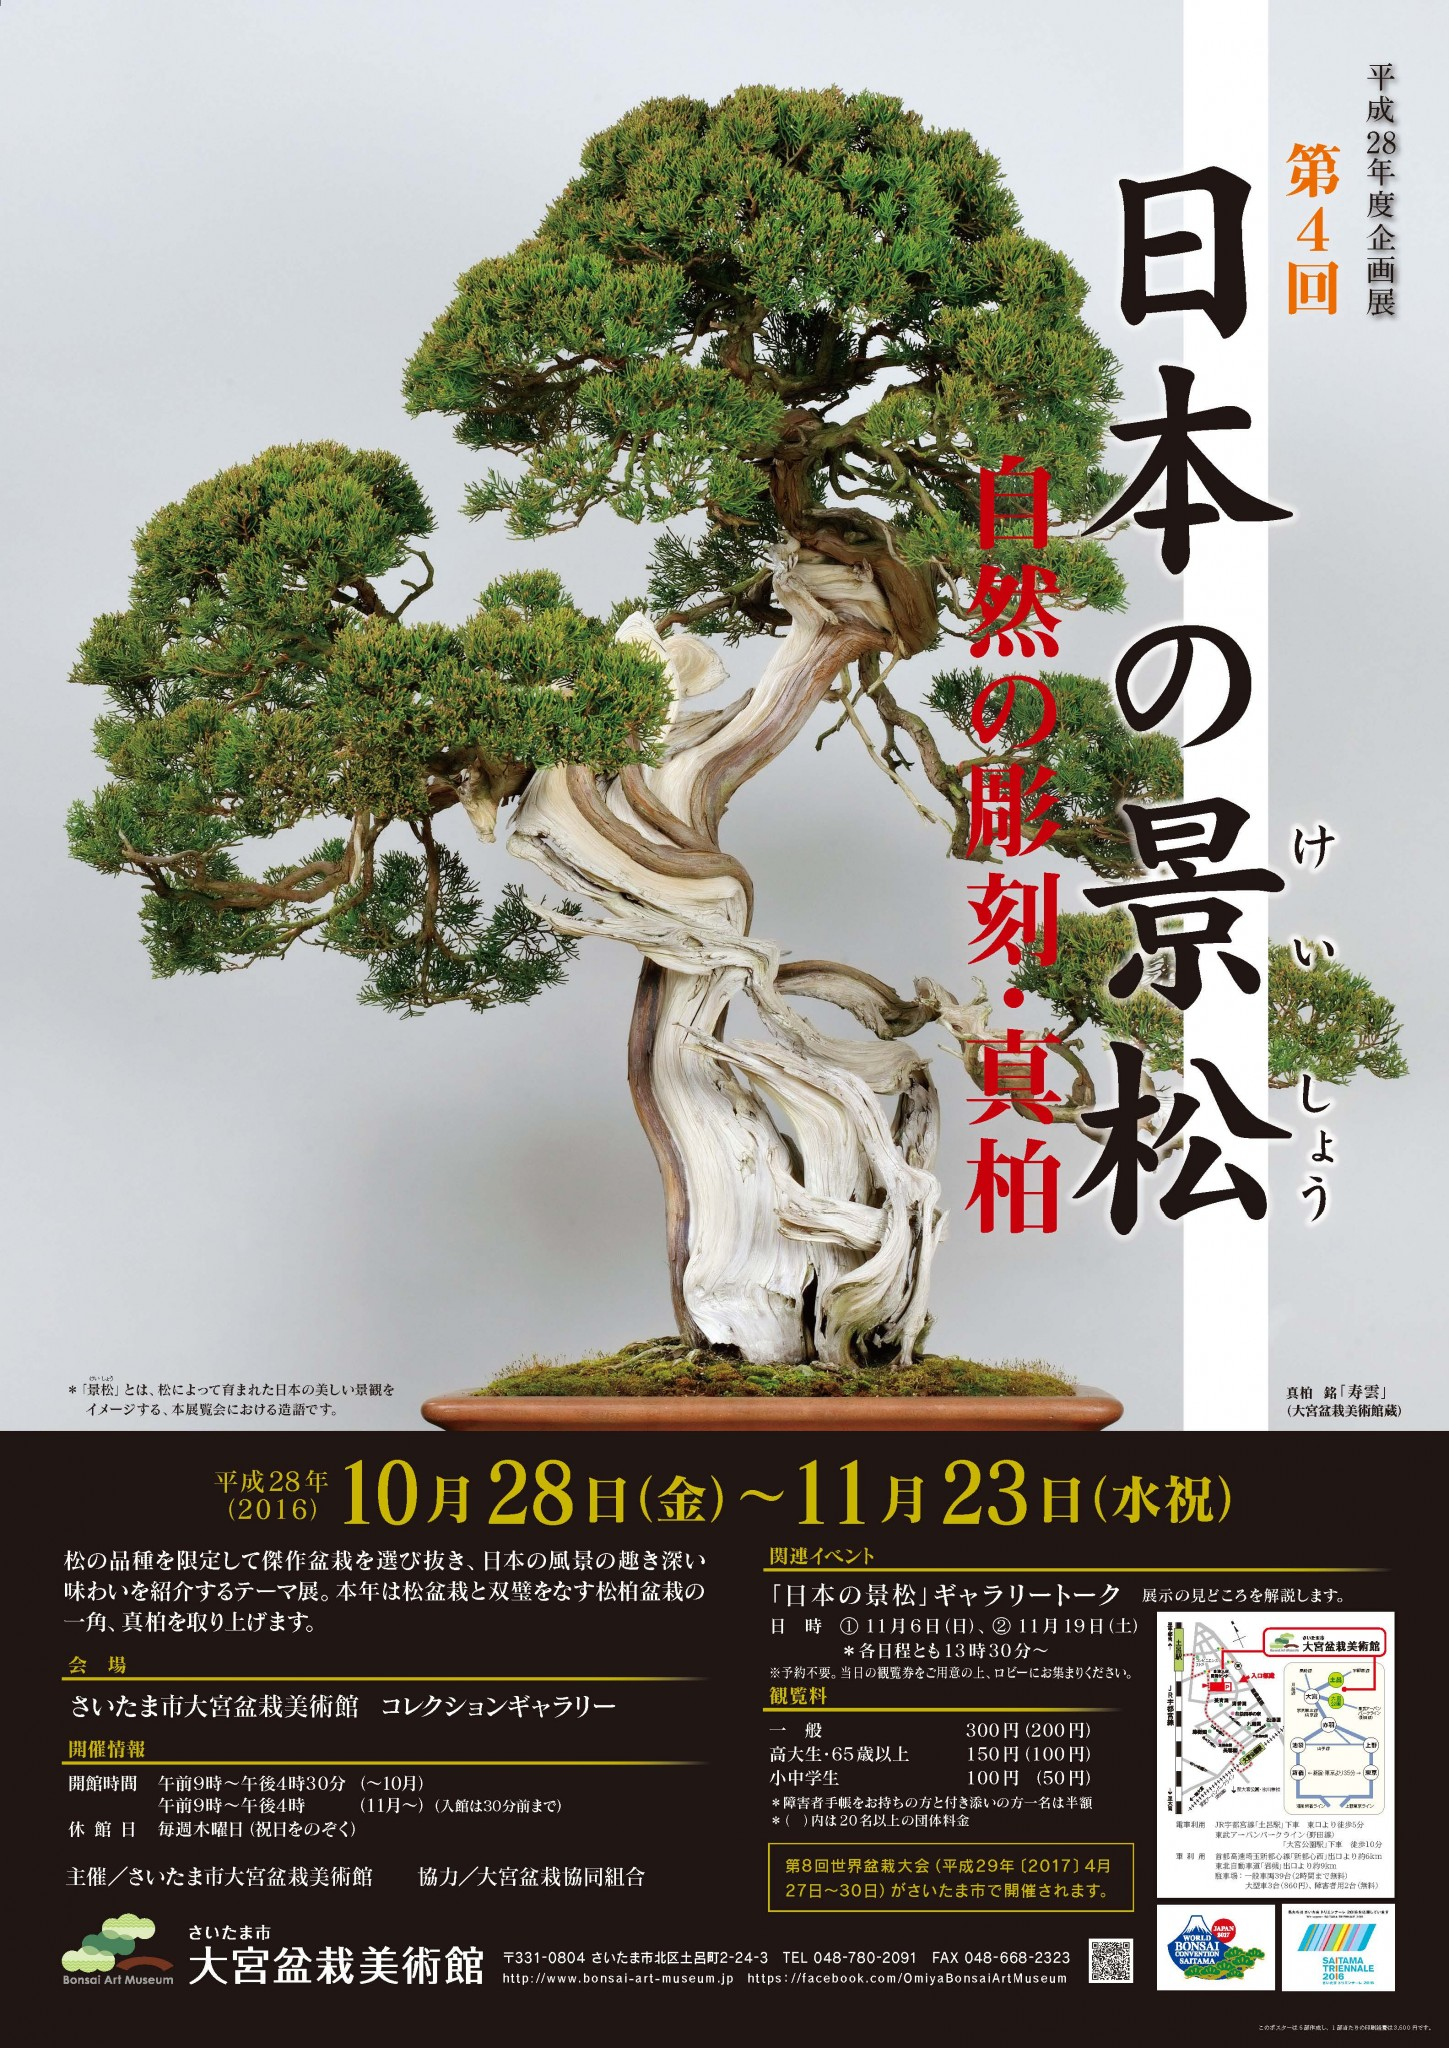 The Japanese Landscape with Shimpaku, Japanese Juniper